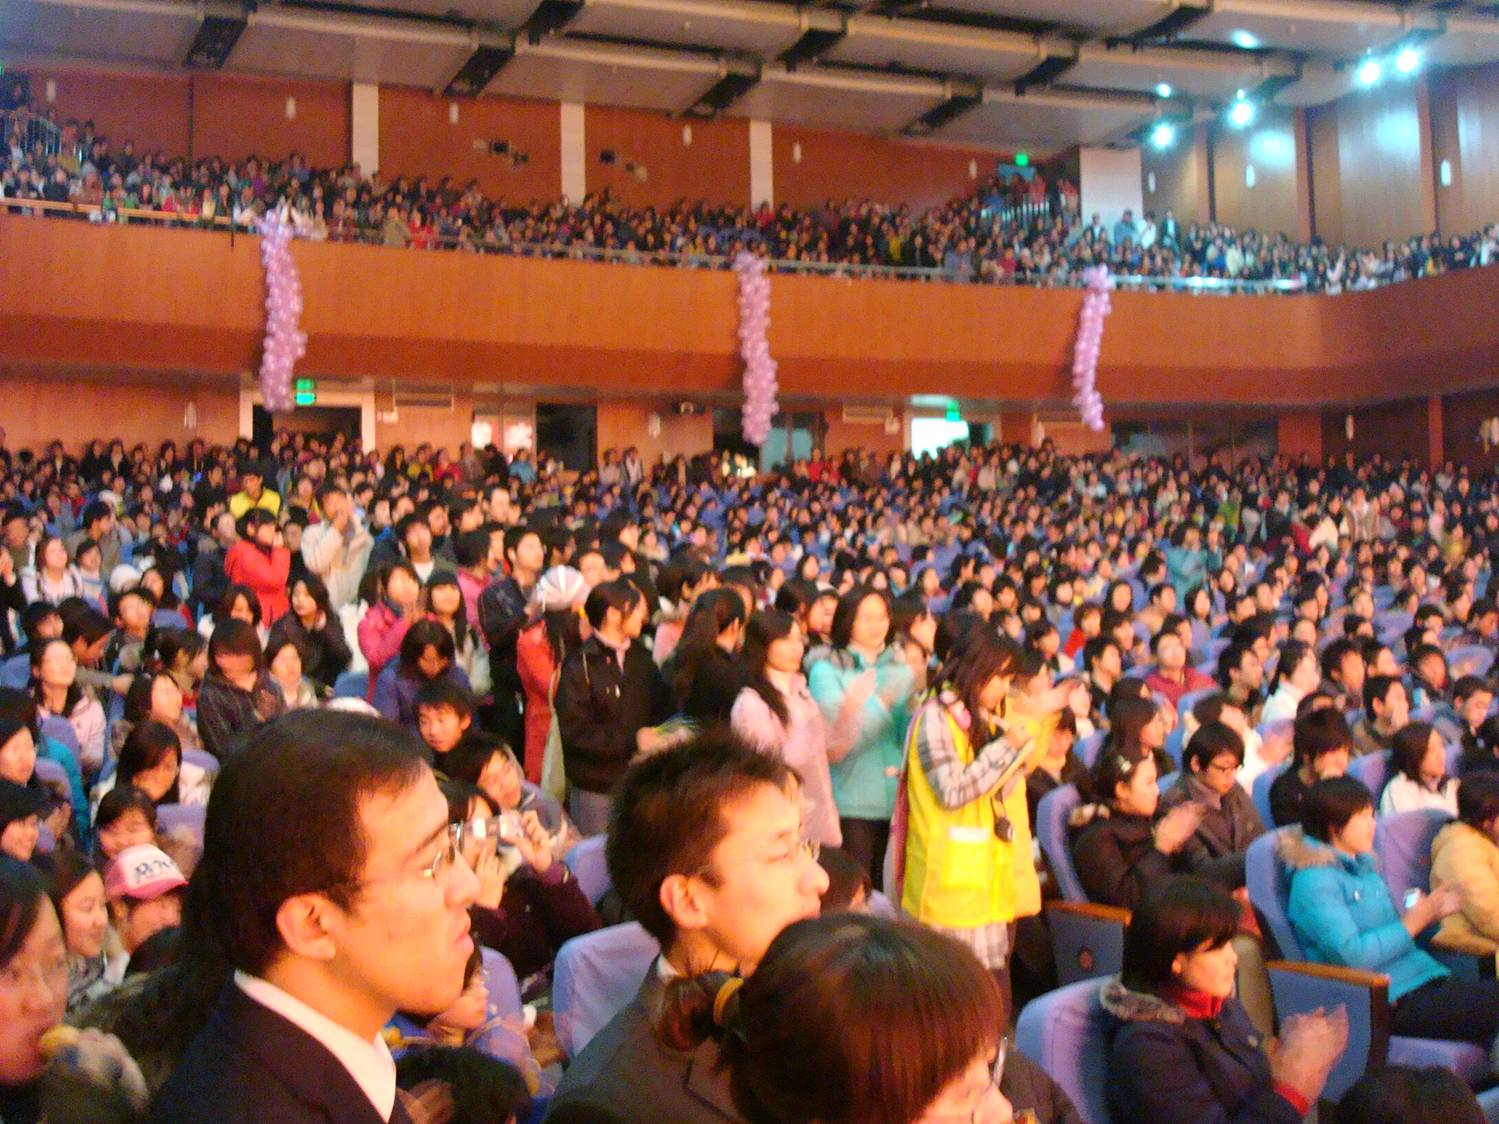 Jiangnan University Christmas concert audience